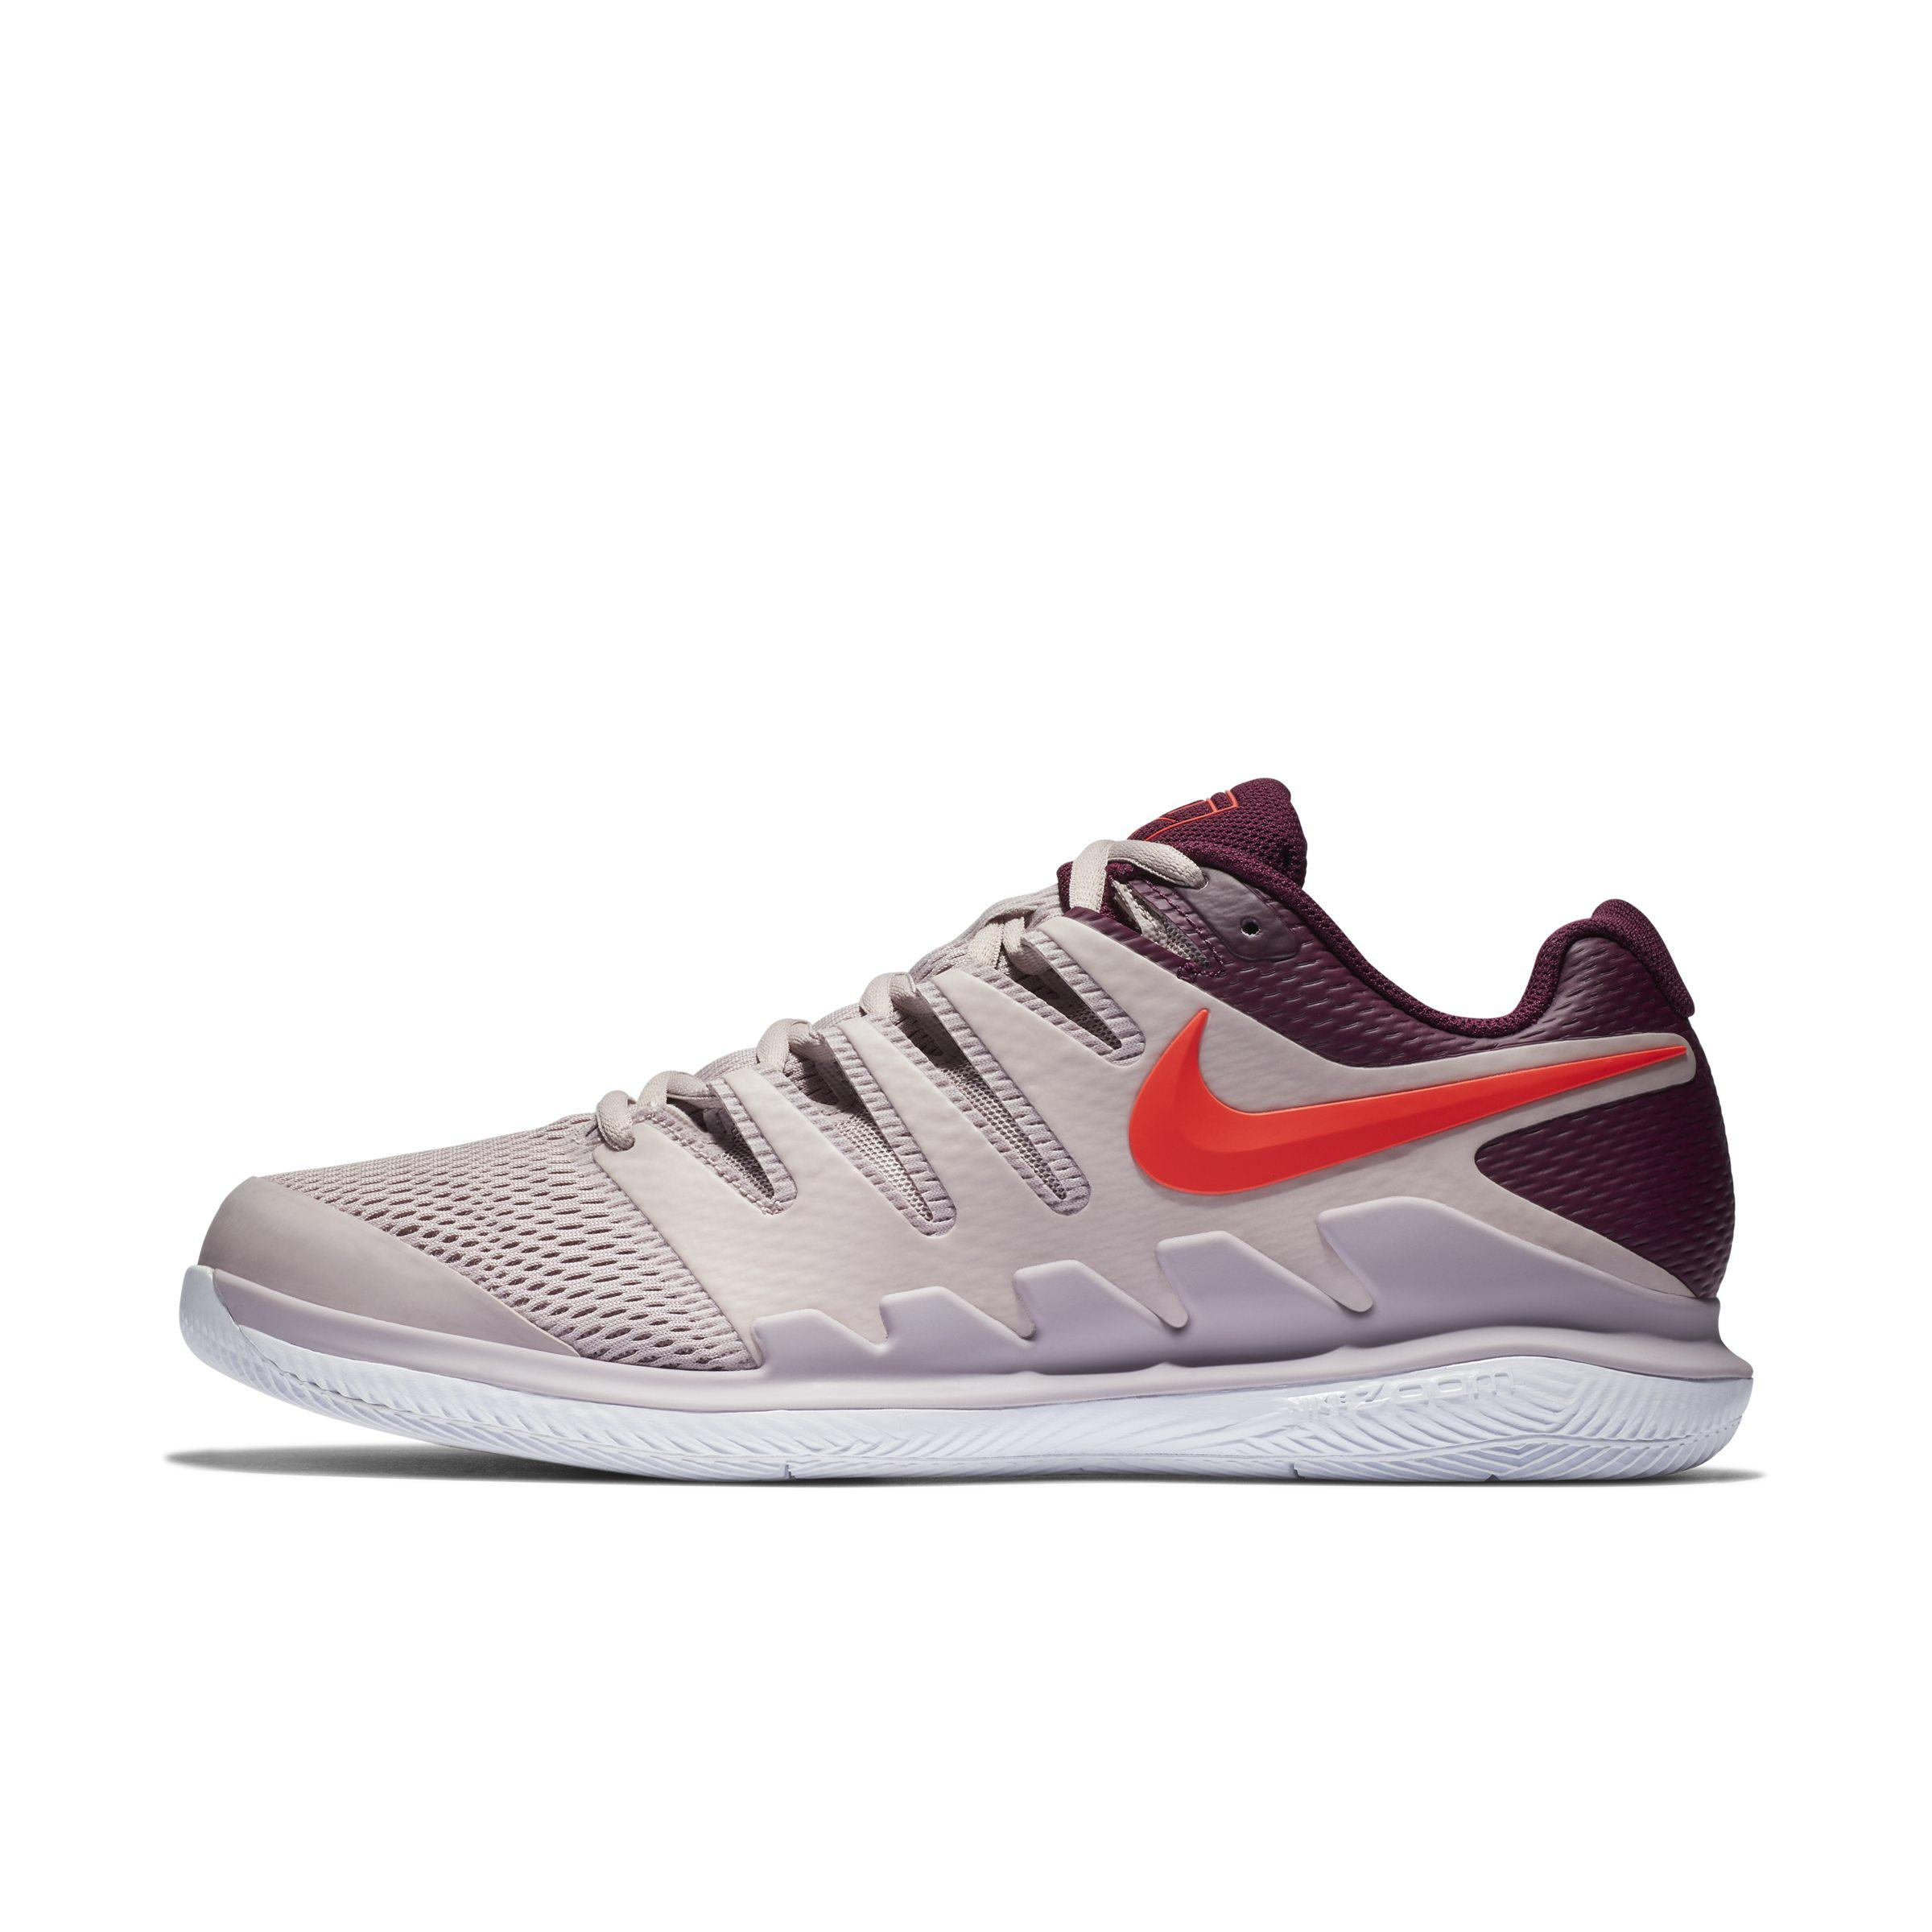 daa74b2e5cdb5 Nike Court Air Zoom Vapor X Hard Court Tennis Shoe in Pink for Men ...